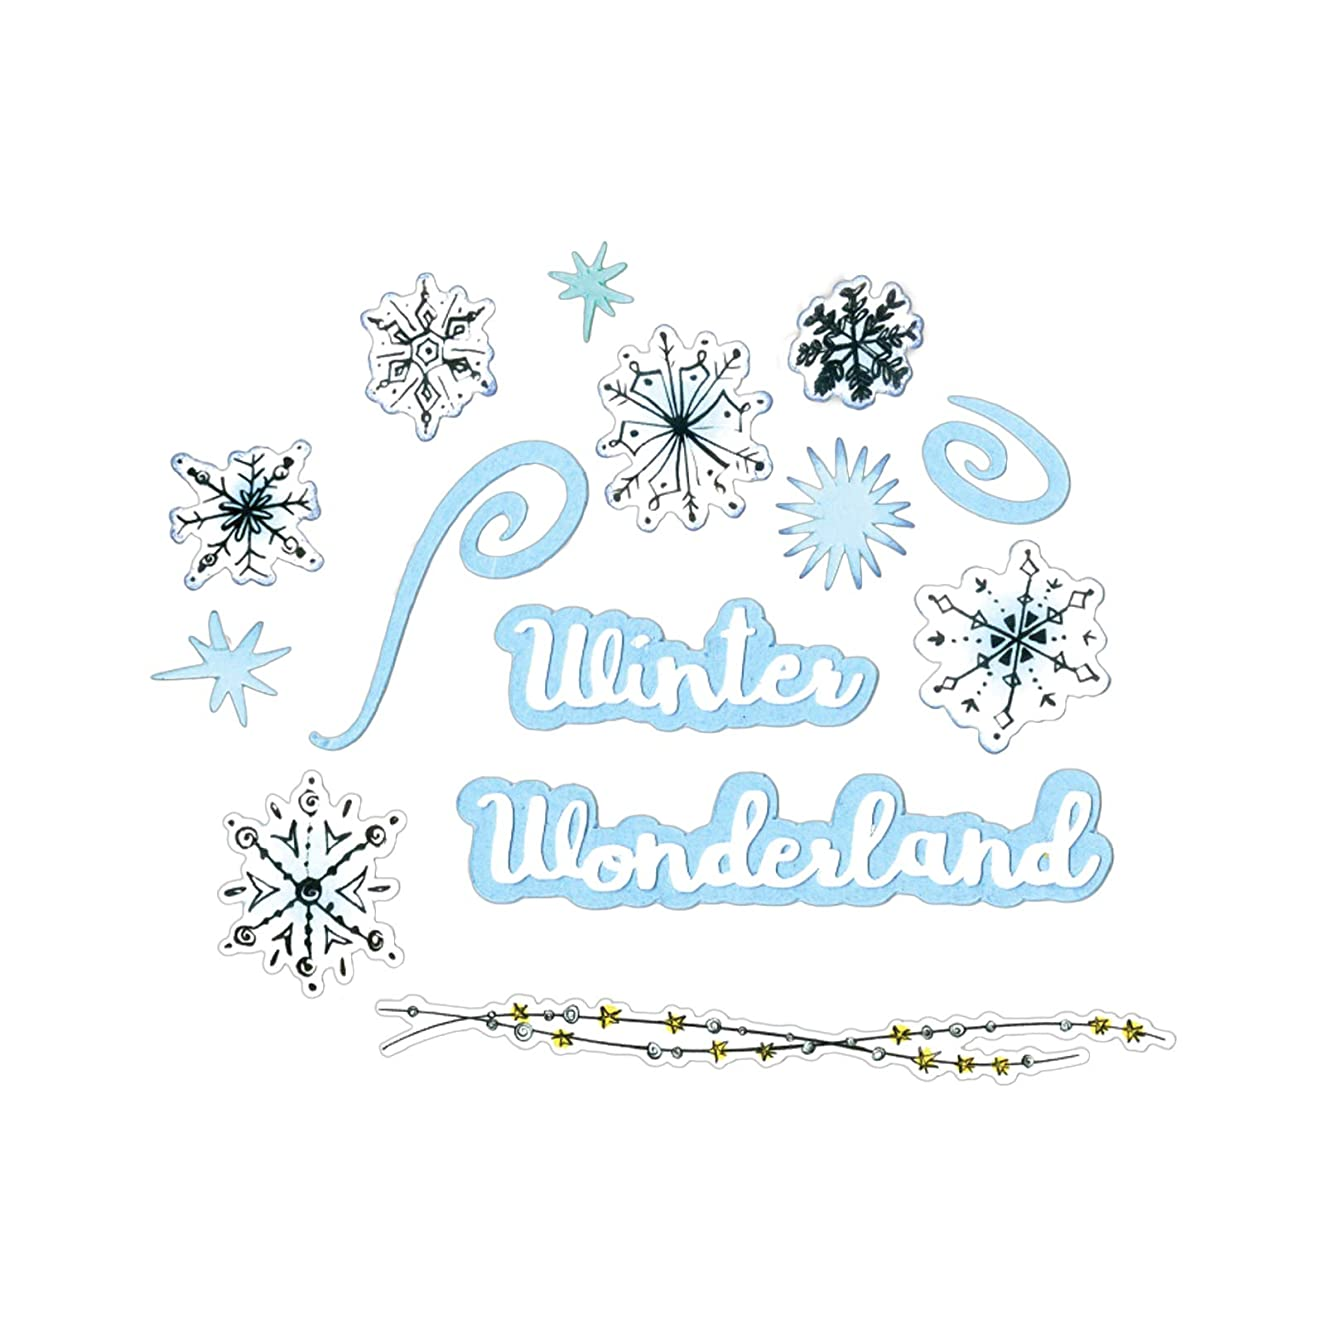 Sizzix 662895 Framelits Die Set with Stamps, Snowflake Doodles by Courtney Chilson (17-Pack), Blue